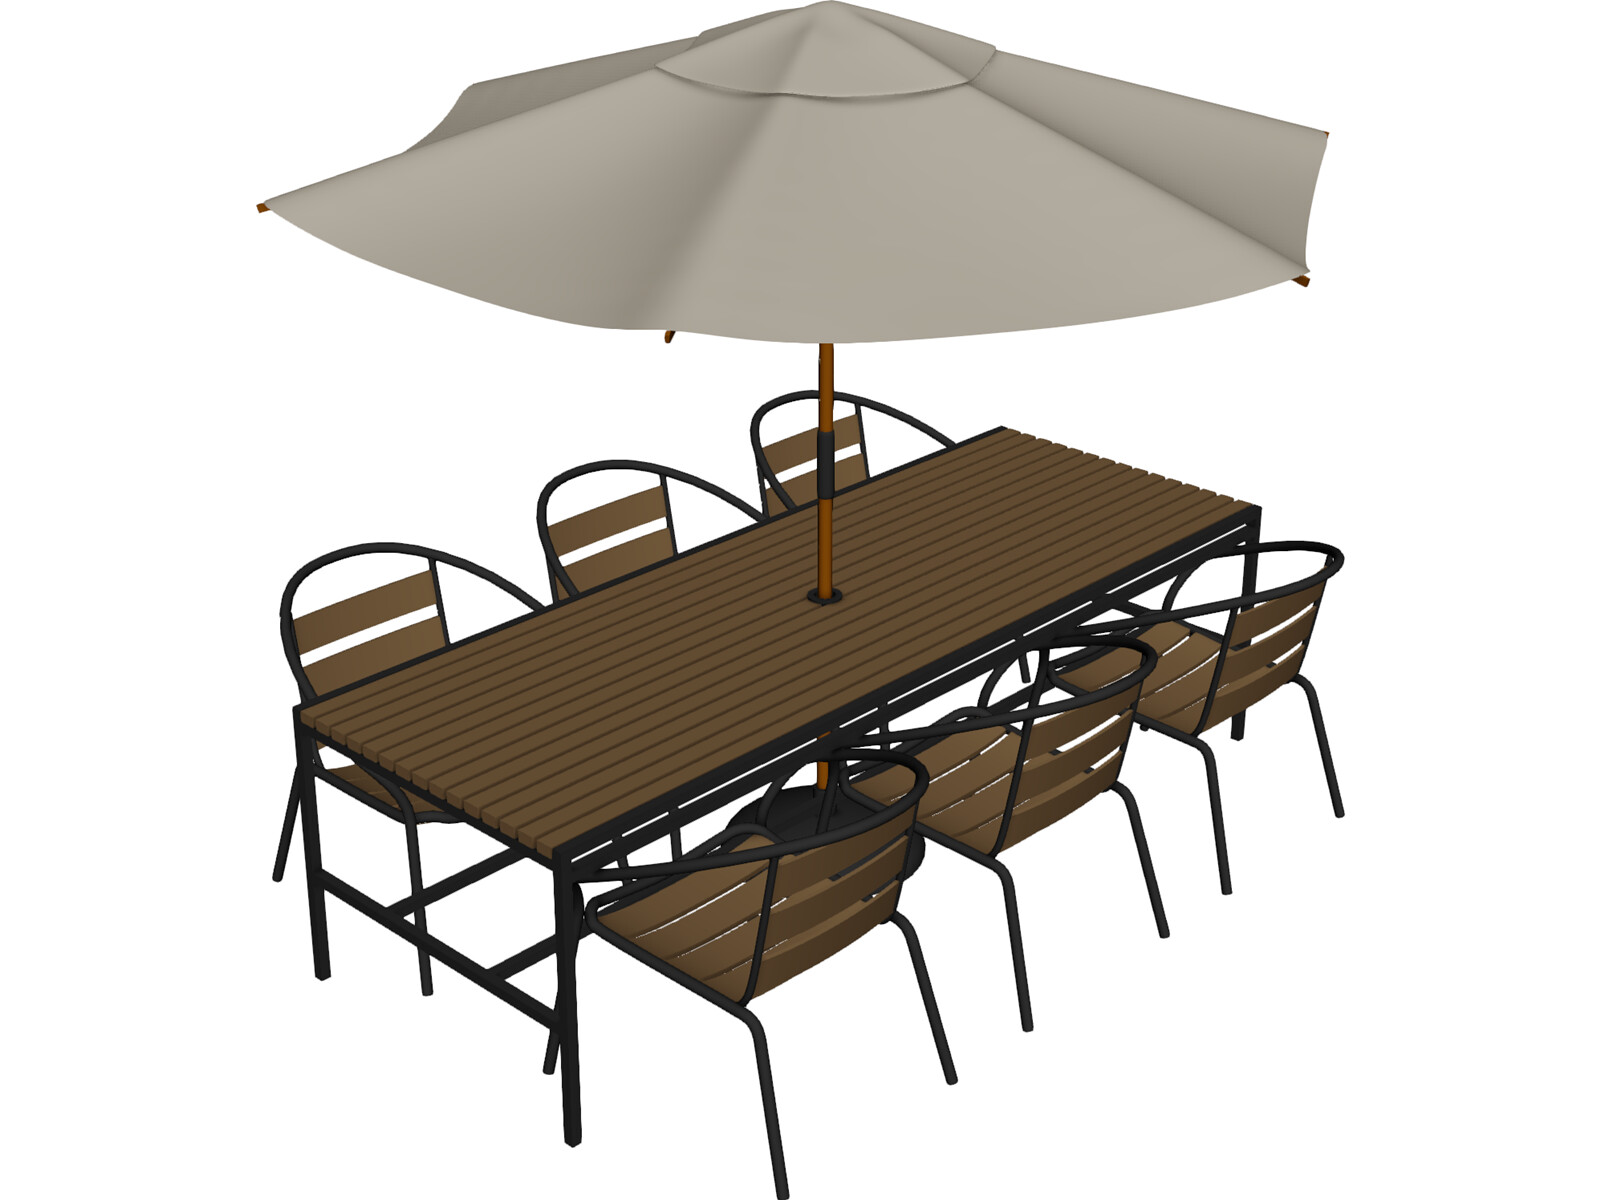 Outdoor chairs table and umbrella 3d model 3d cad browser for Outdoor furniture 3d max